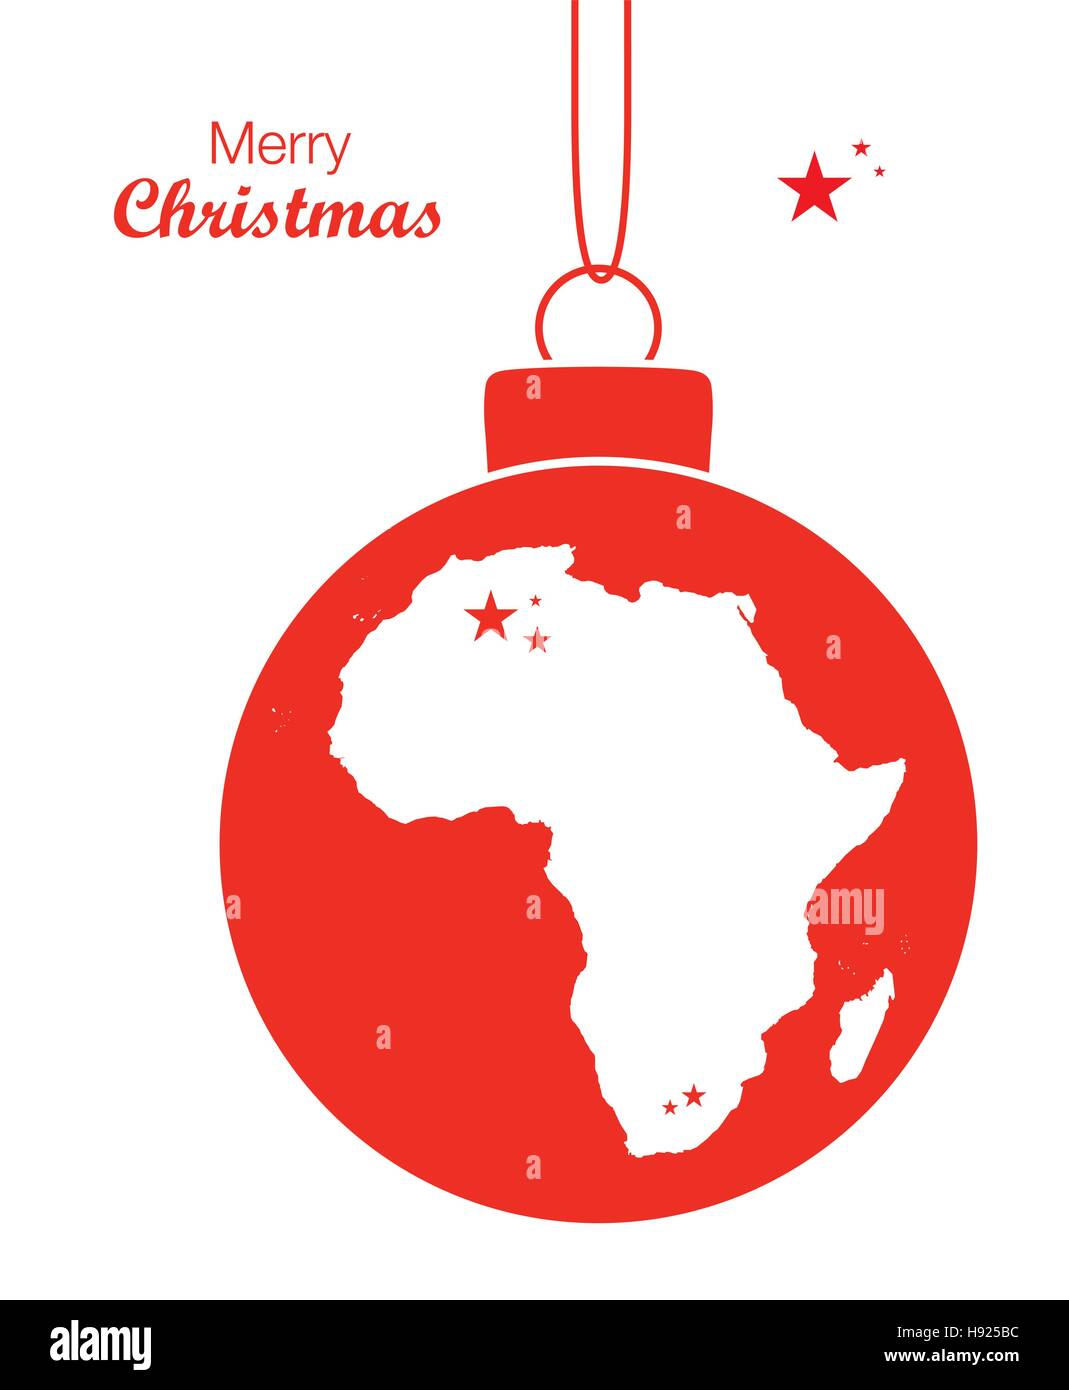 merry christmas illustration theme with map of africa stock vector